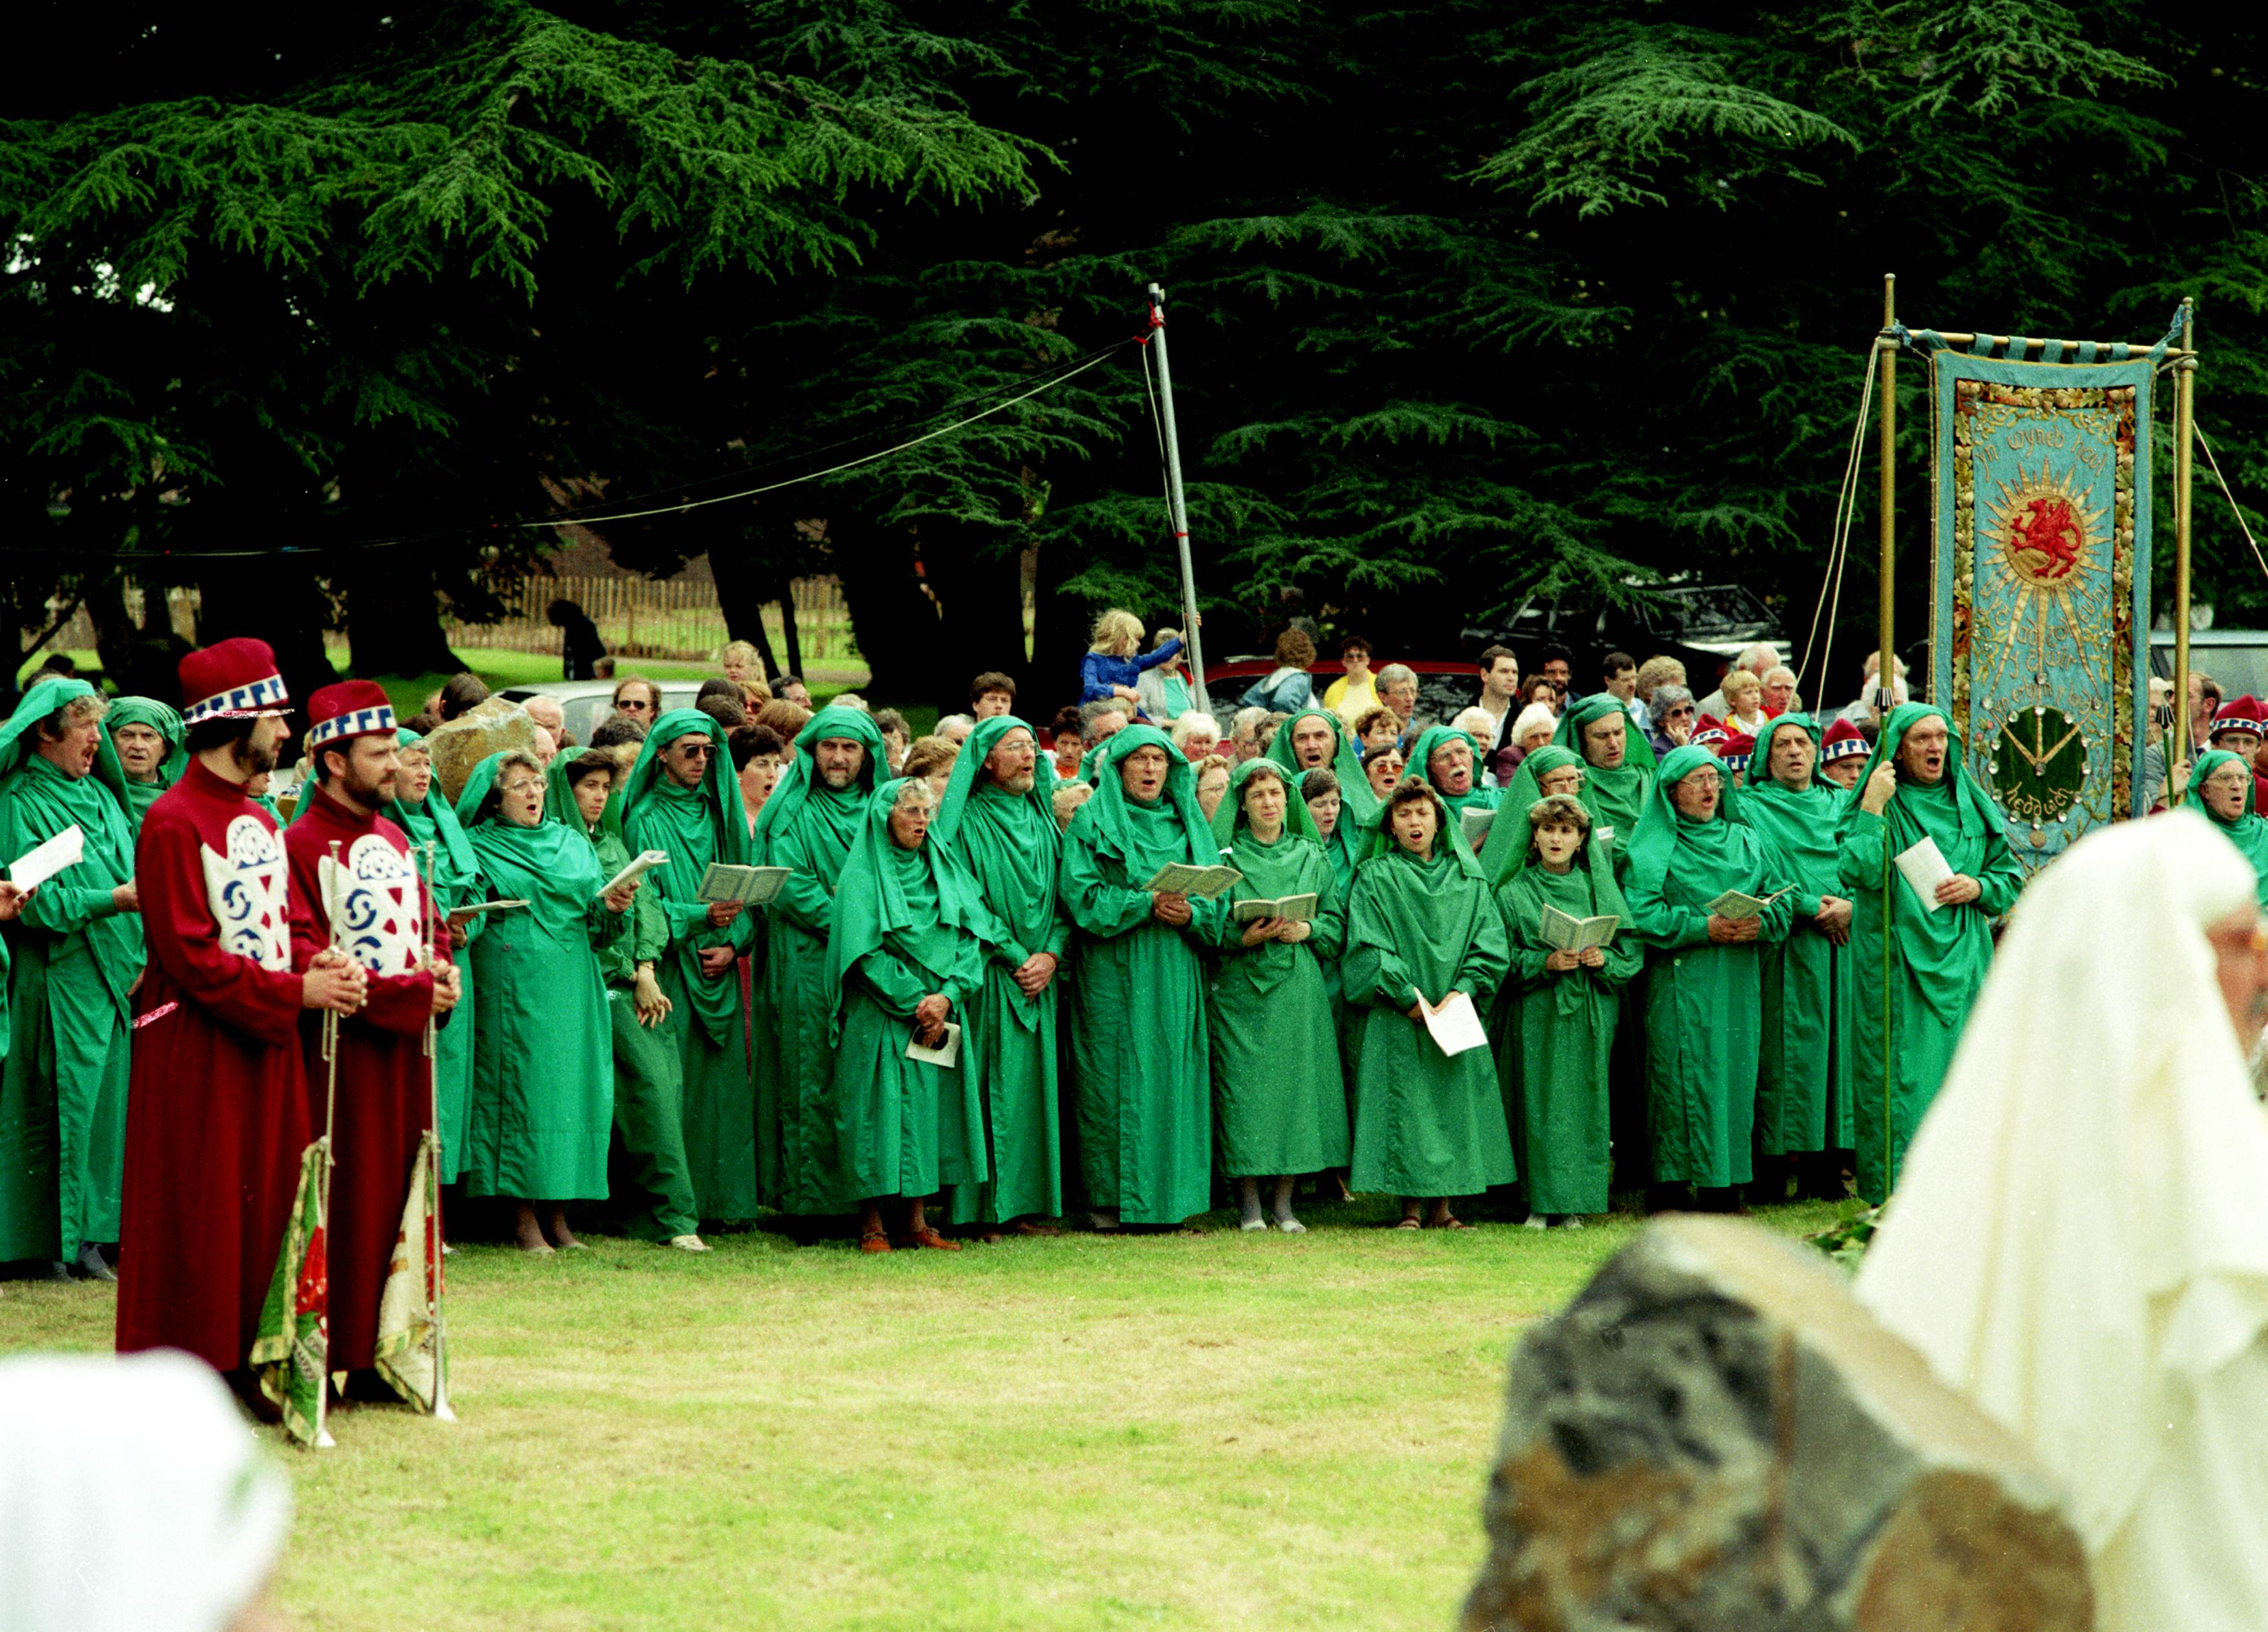 Gorsedd members, Newport Porclamation ceremony, 1987